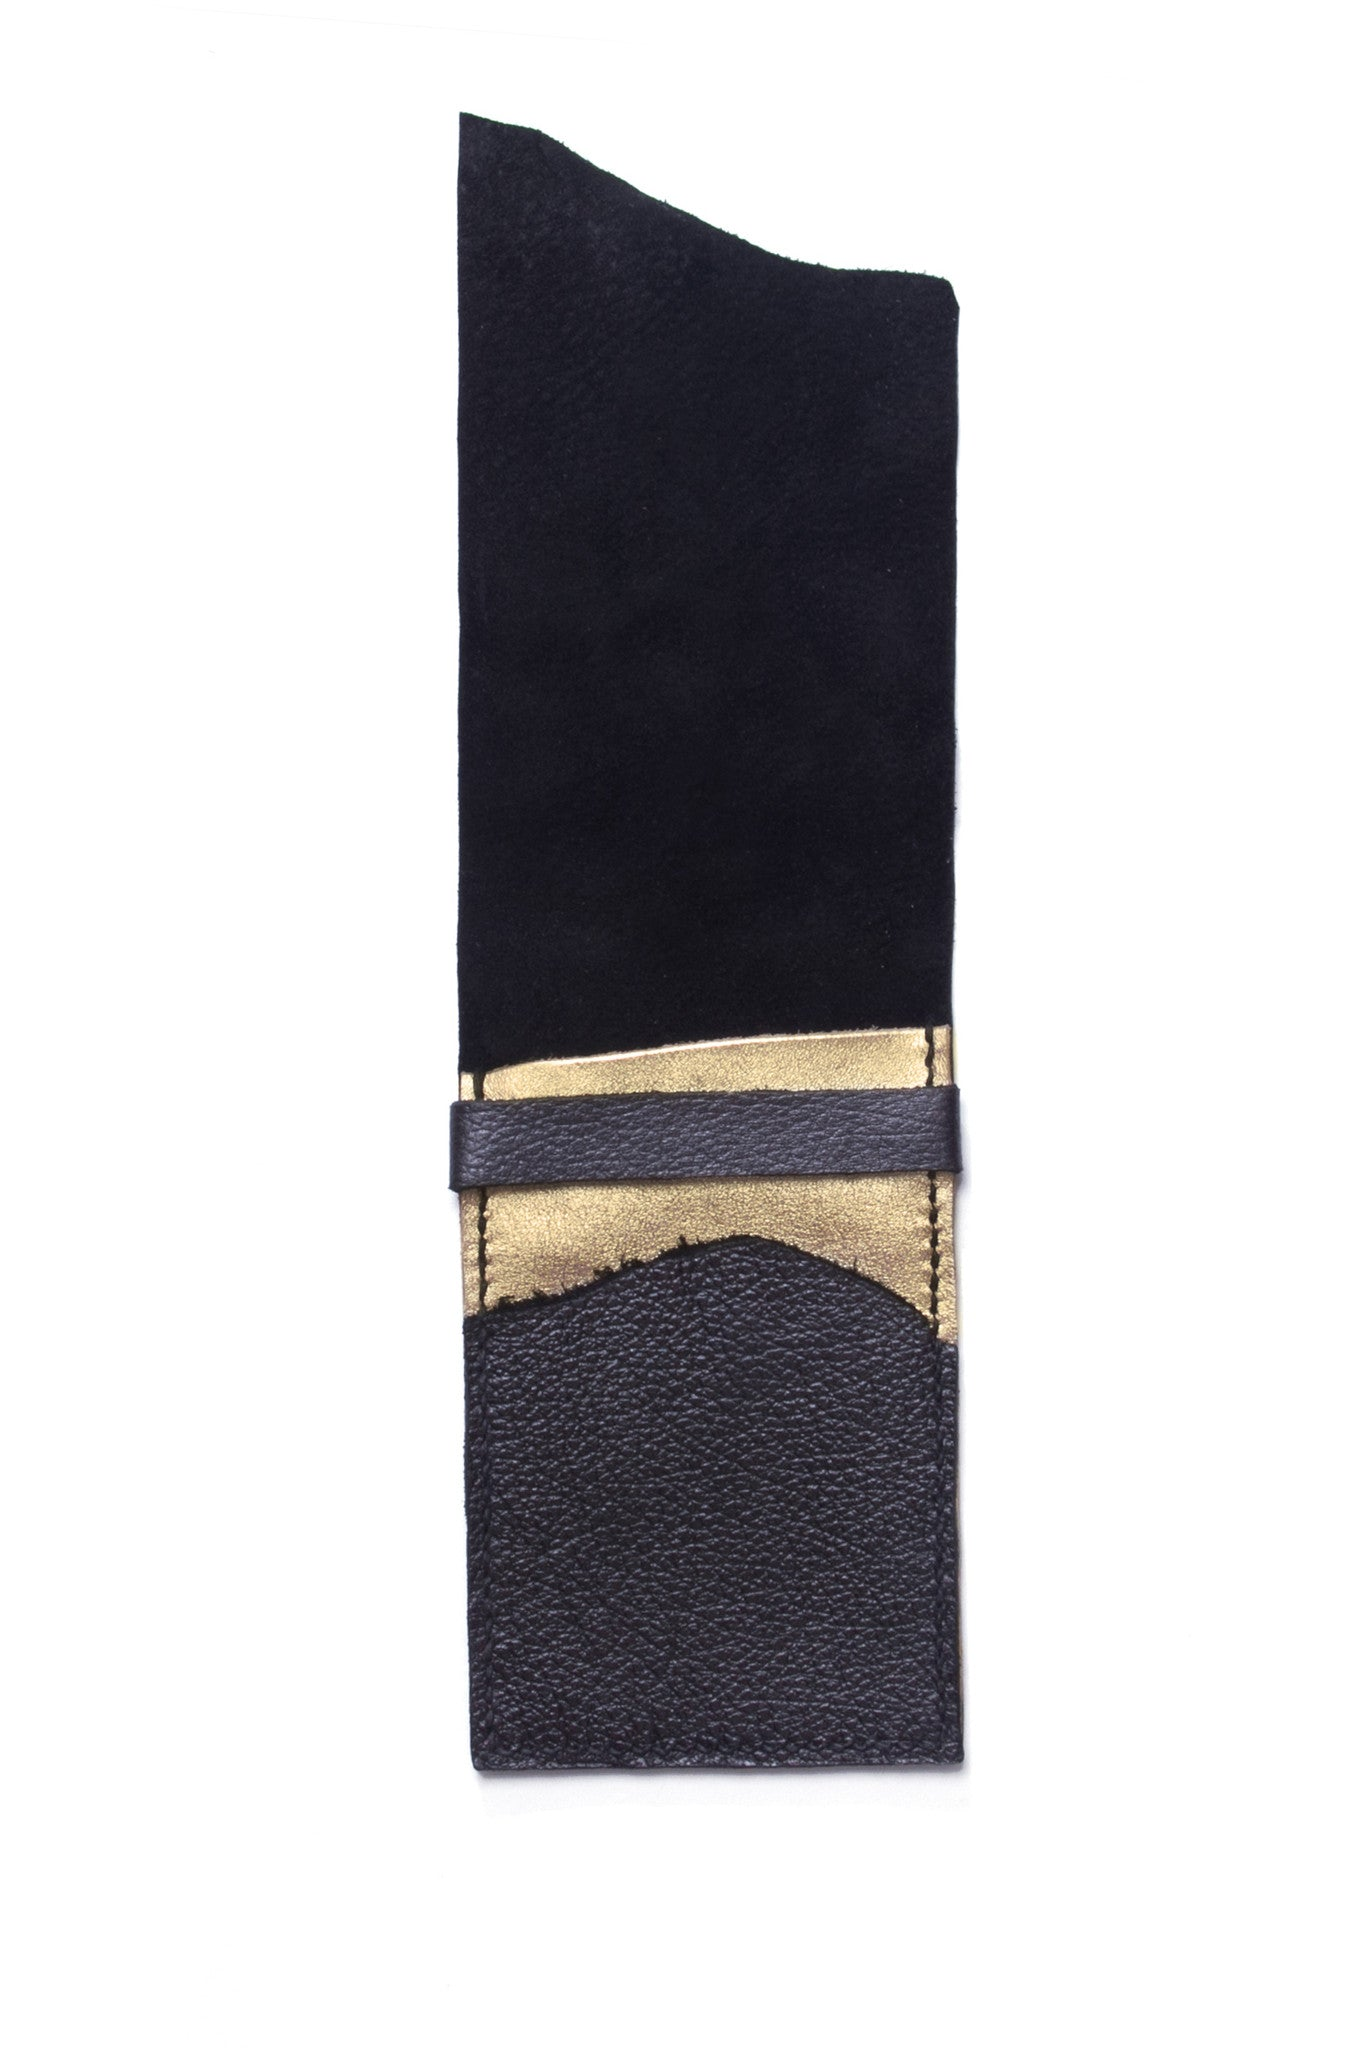 Stella Black & Gold Leather Raw iPhone Sleeve Open View by Liana Rosa